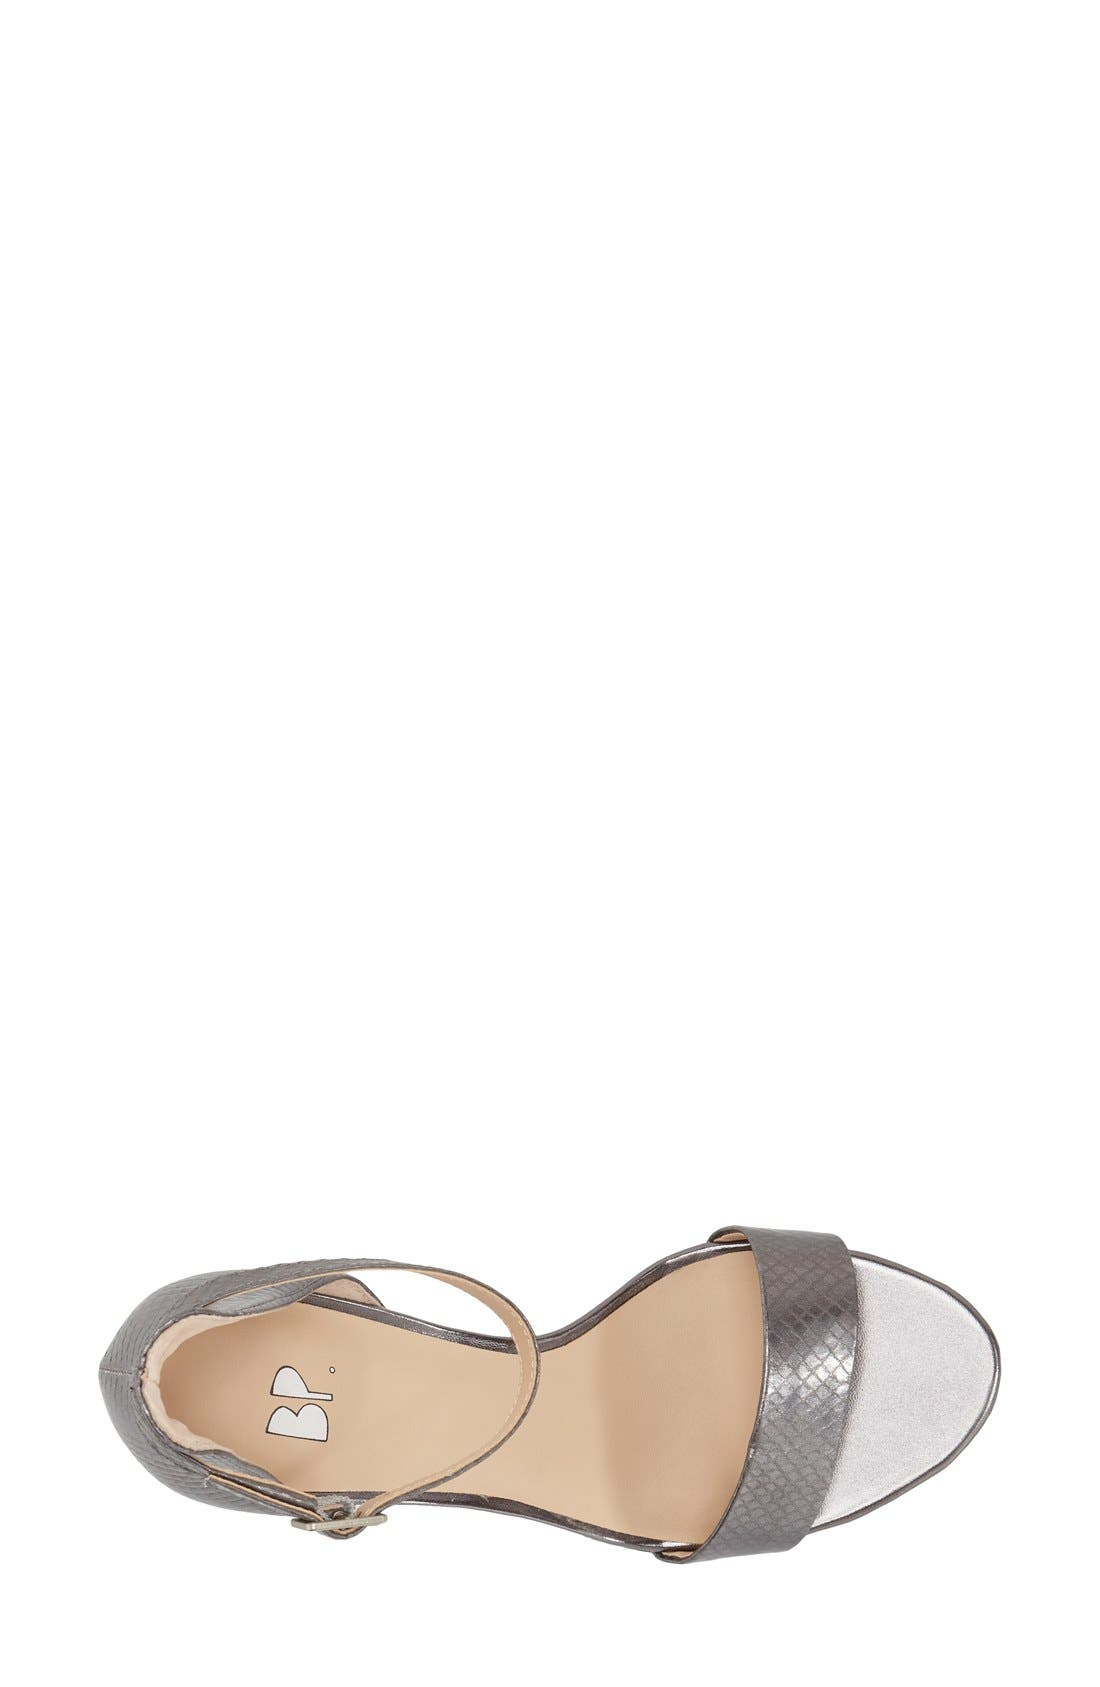 'Luminate' Open Toe Dress Sandal,                             Alternate thumbnail 153, color,